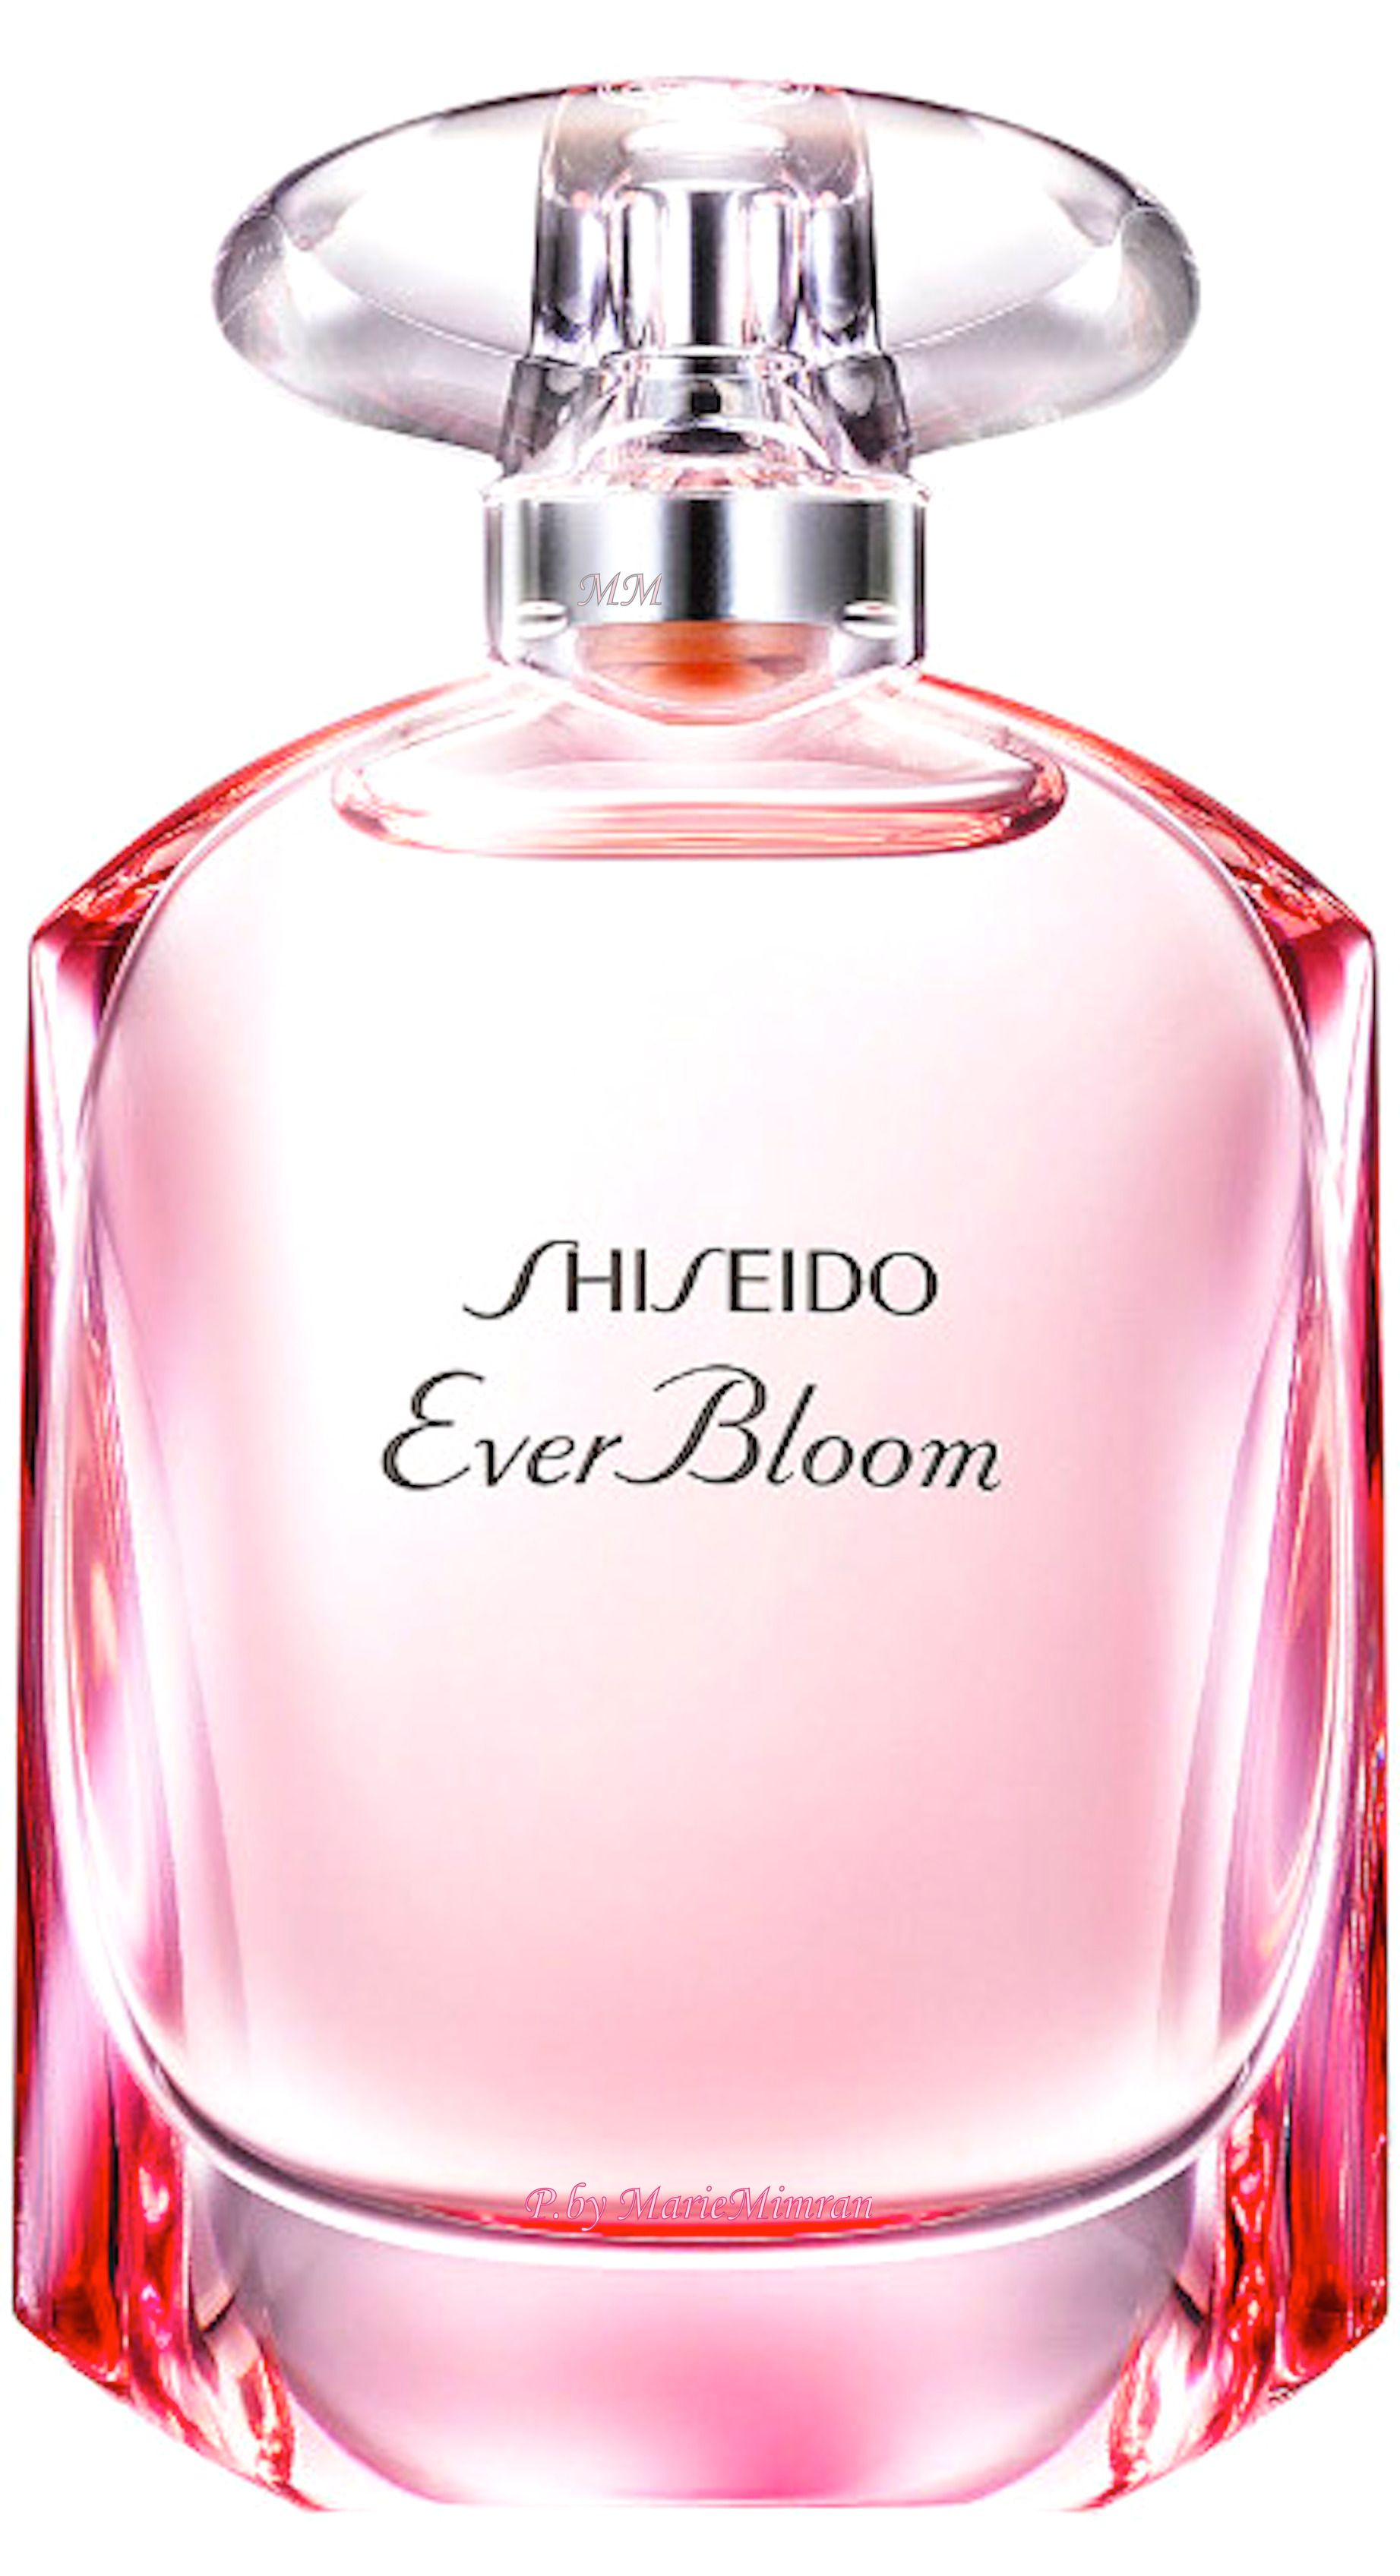 Shiseido Ever Bloom Fragrance Pinterest Perfume Fragrance And